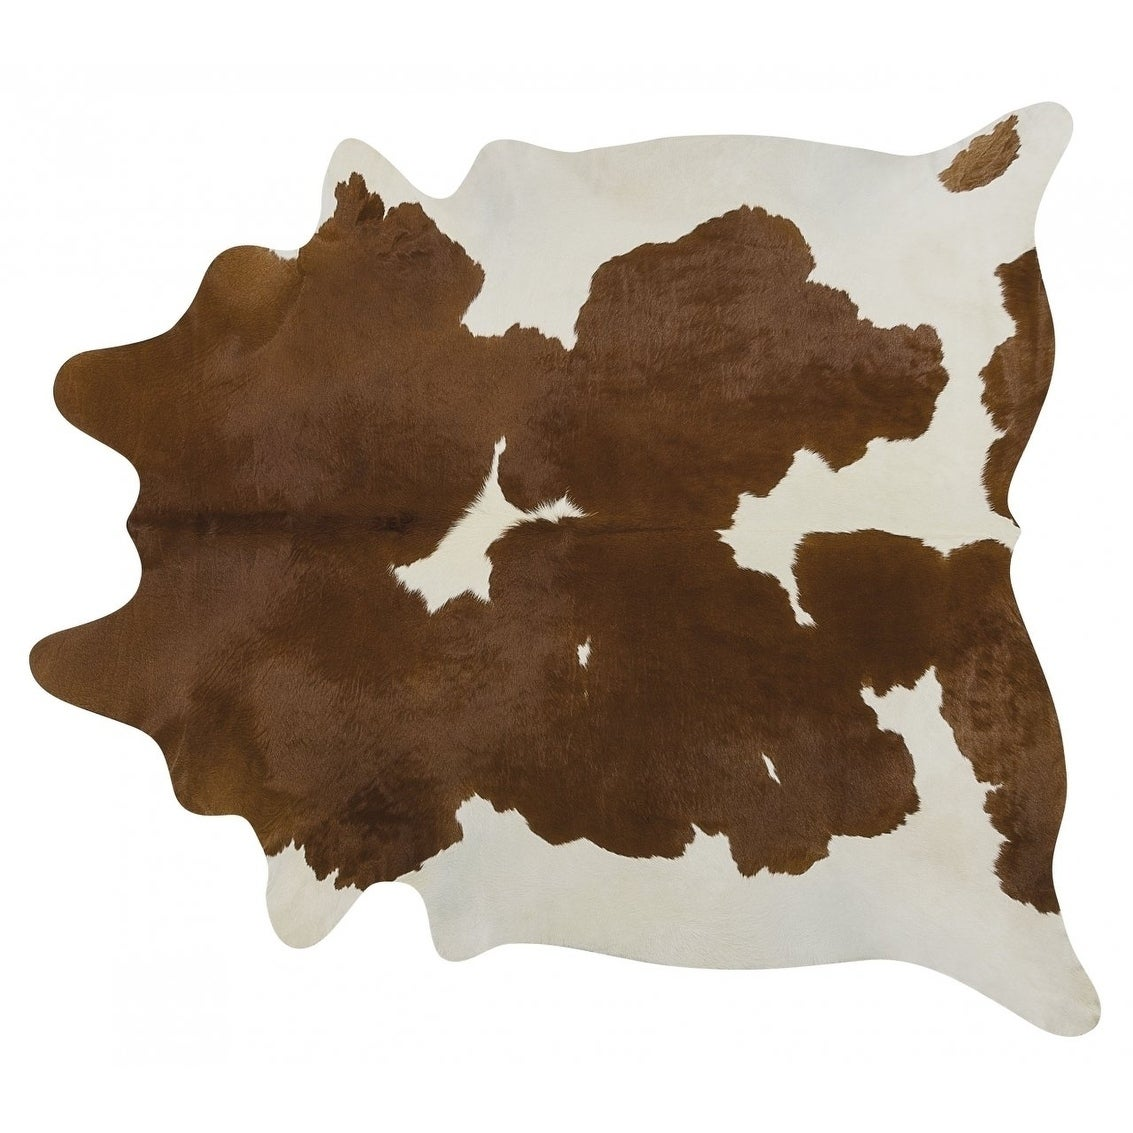 Pergamino Brown And White Cowhide Rug XXL - N/A (N/A - brownwhite)